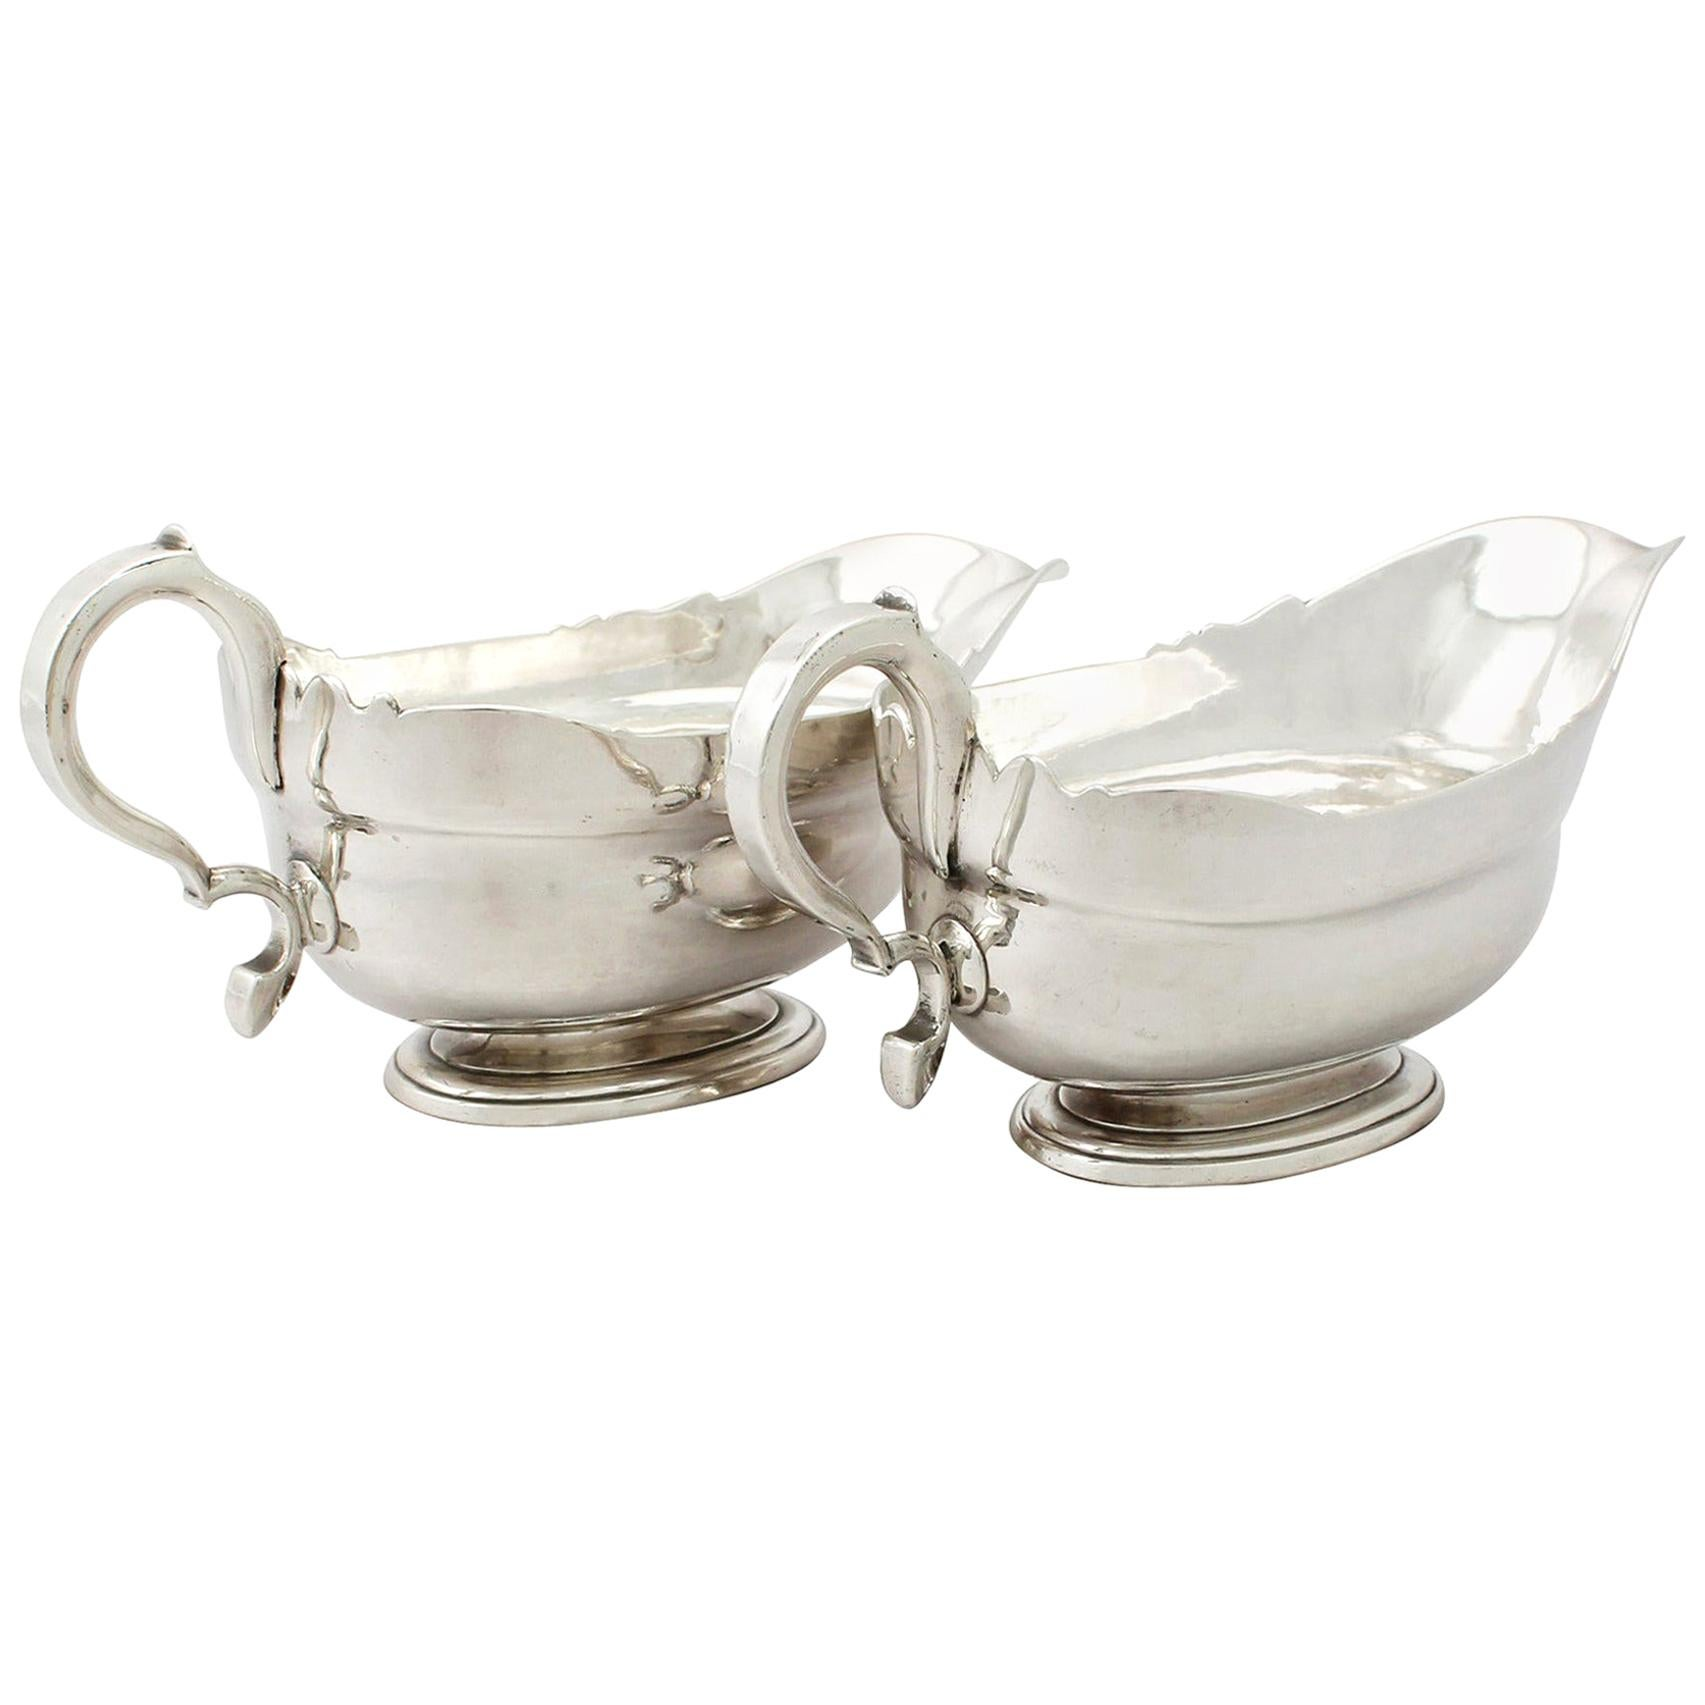 Antique Newcastle Sterling Silver Sauceboats / Gravy Boats